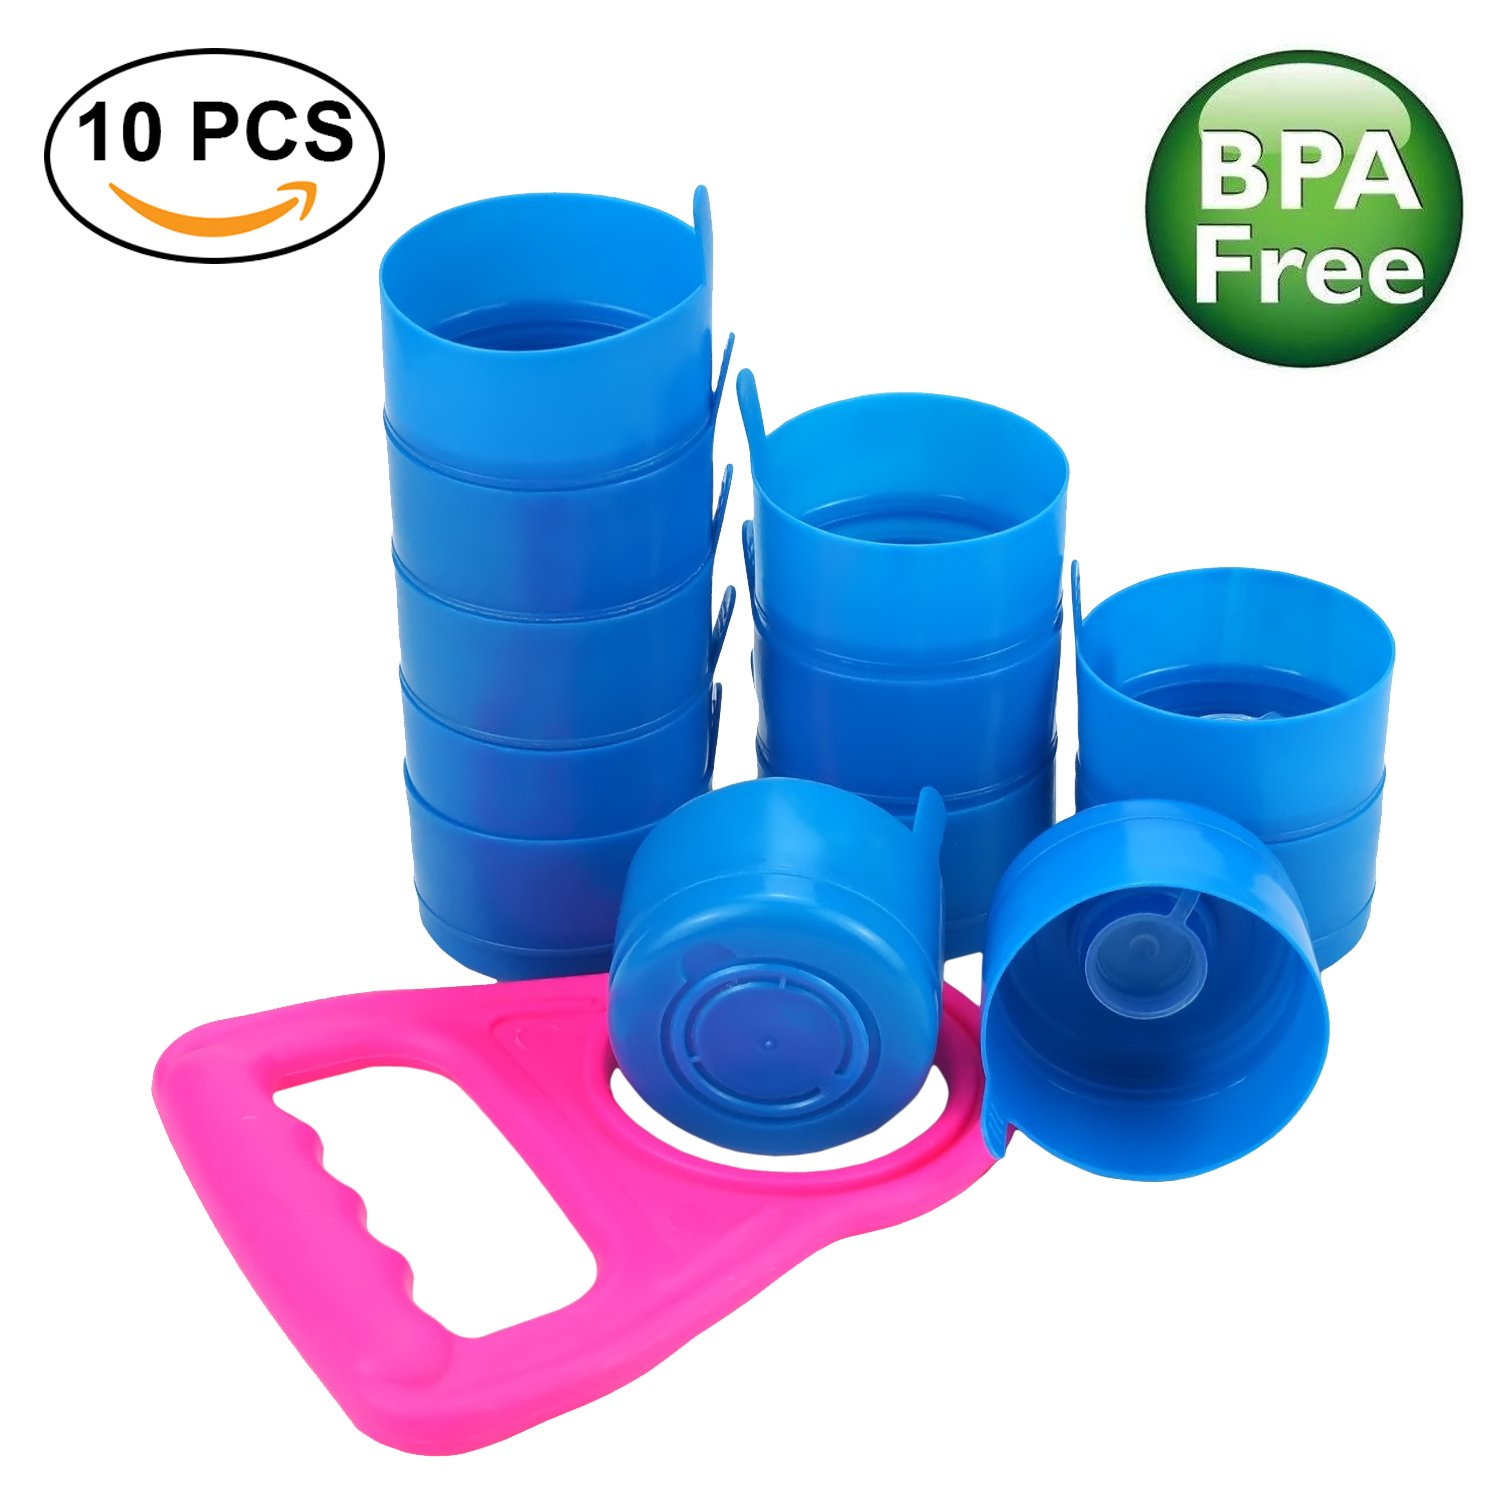 3255baa992 Get Quotations · Non Spill Cap Anti Splash Bottle Caps Reusable for 55mm 3  and 5 Gallon Water Jugs